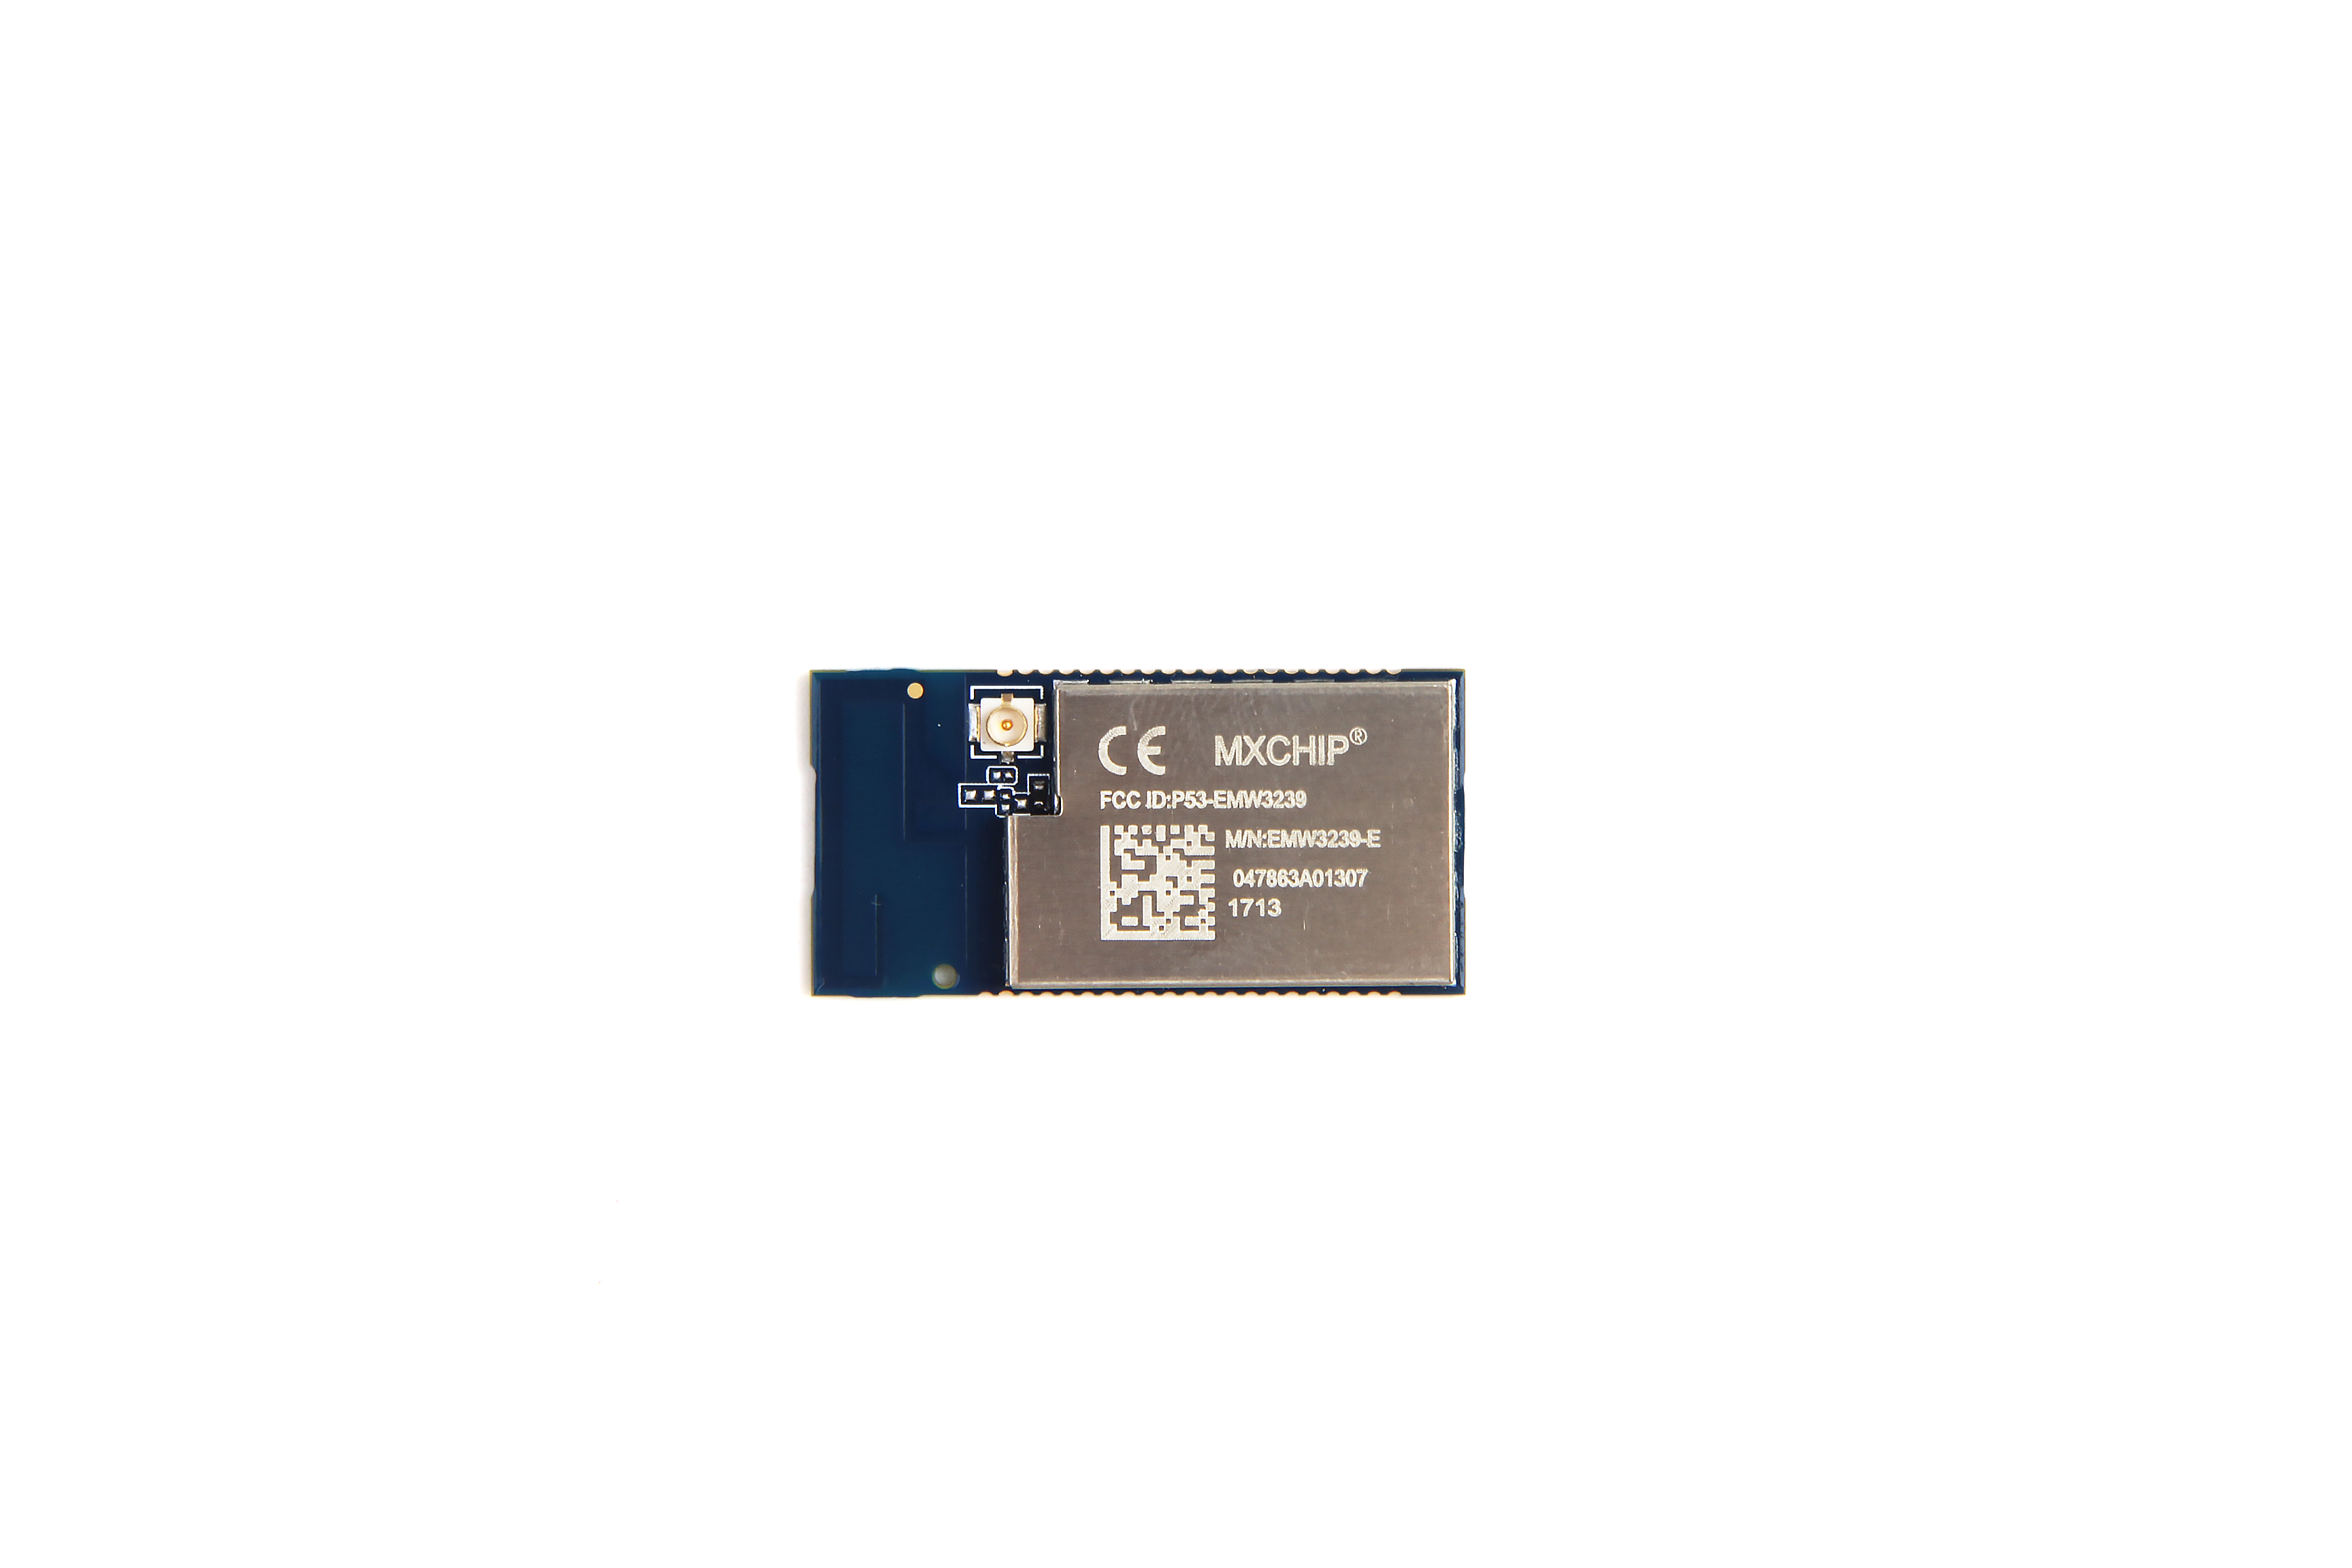 Emw3239 Combo Module Wifi Bluetooth Bleexternal Ipex Antenna Gps Pcba Pcb Assembly Circuit Board